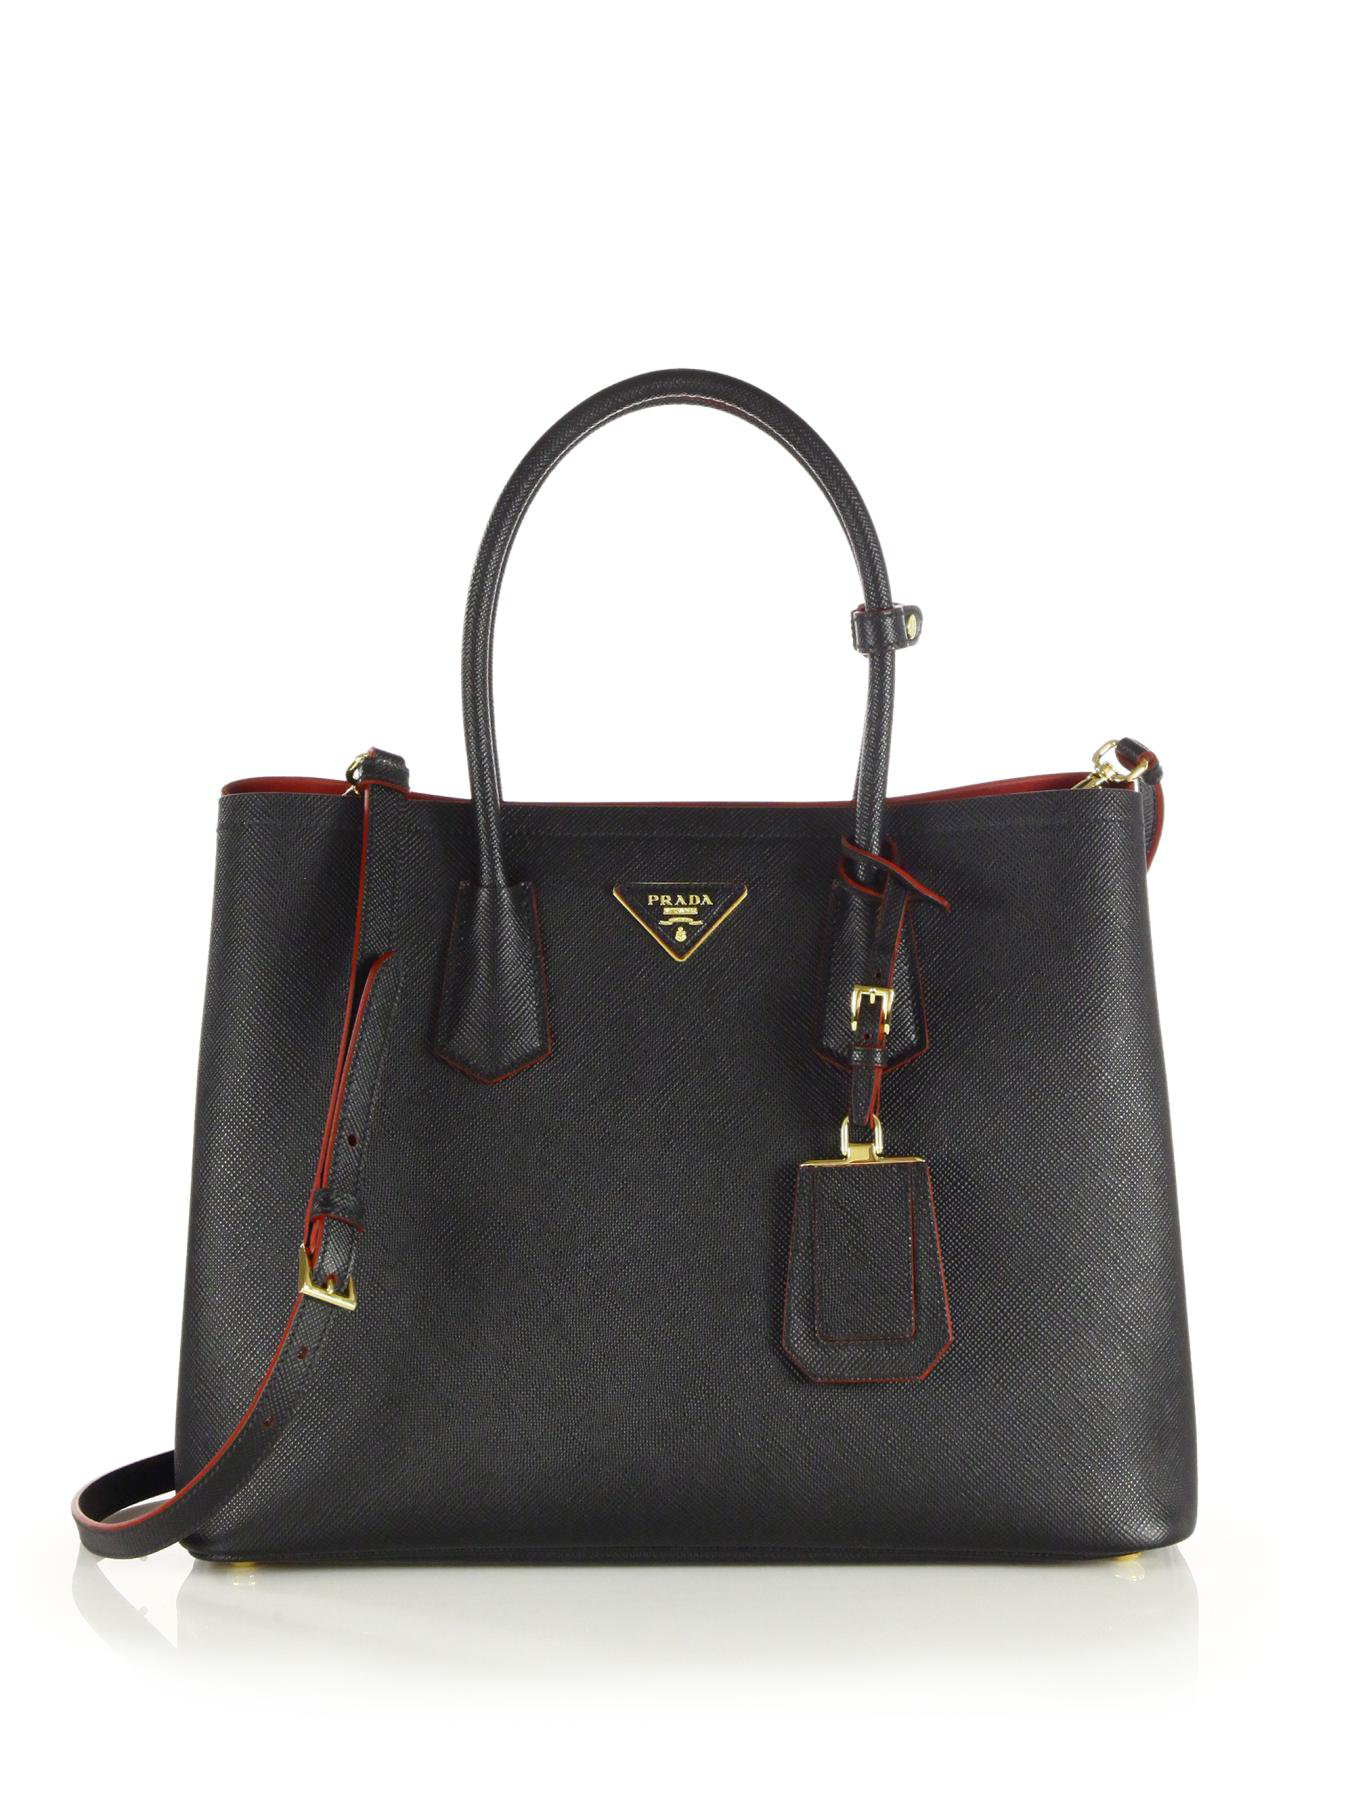 ff86b7810fab68 Prada Saffiano Cuir Double Bag Large | Stanford Center for ...